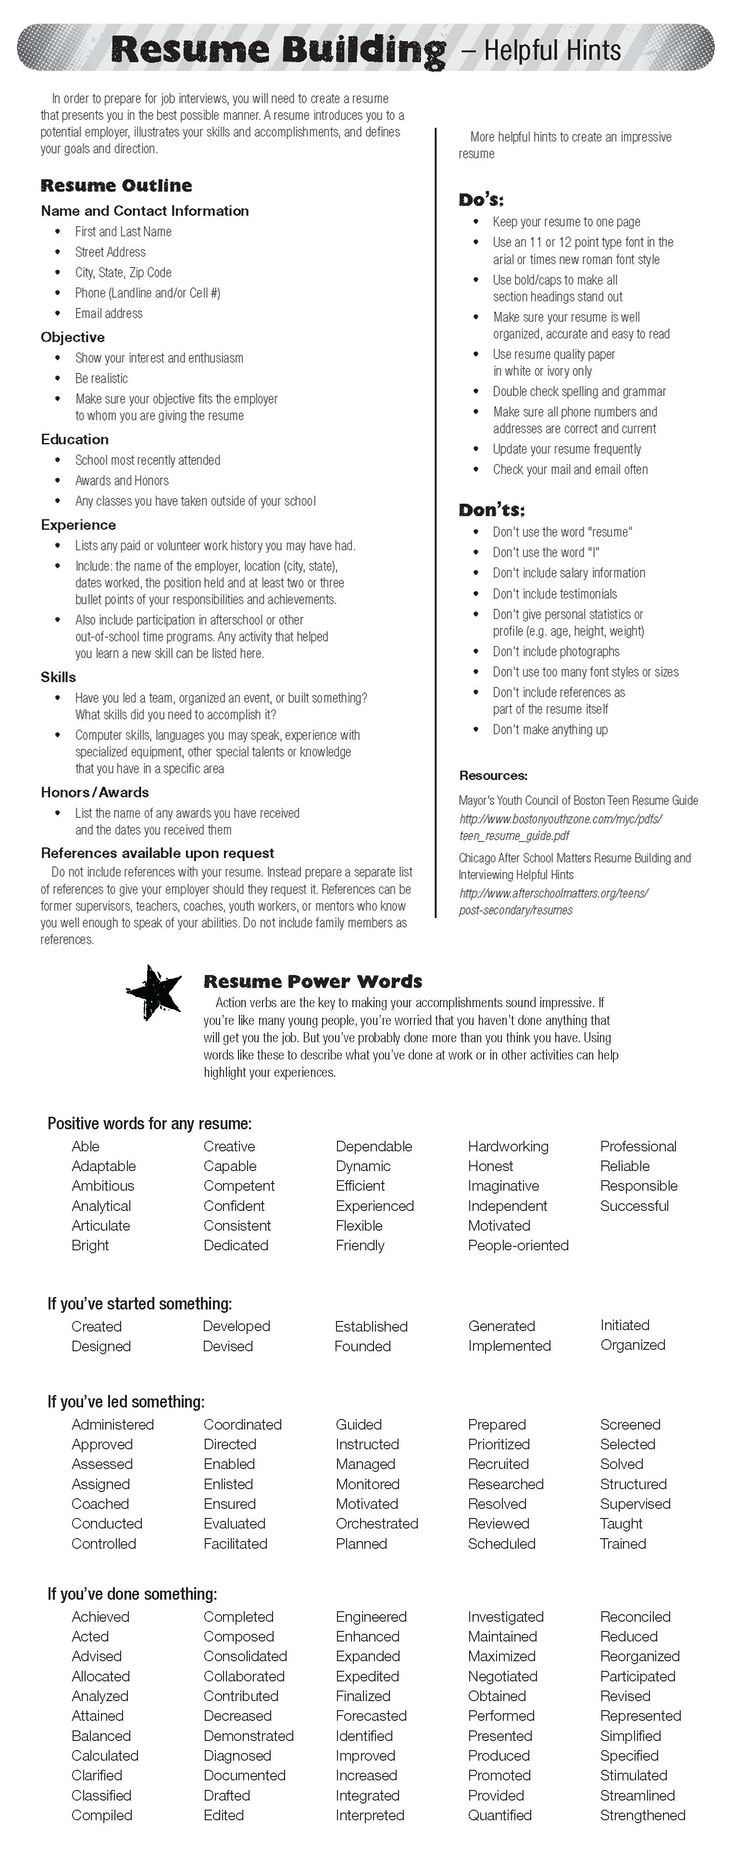 Opposenewapstandardsus  Winsome  Ideas About Resume On Pinterest  Cv Format Resume Cv And  With Fetching  Ideas About Resume On Pinterest  Cv Format Resume Cv And Resume Templates With Lovely Best Resume Templates Also References On A Resume In Addition Parse Resume And Education Resume As Well As Nursing Student Resume Additionally Livecareer Resume Builder From Pinterestcom With Opposenewapstandardsus  Fetching  Ideas About Resume On Pinterest  Cv Format Resume Cv And  With Lovely  Ideas About Resume On Pinterest  Cv Format Resume Cv And Resume Templates And Winsome Best Resume Templates Also References On A Resume In Addition Parse Resume From Pinterestcom